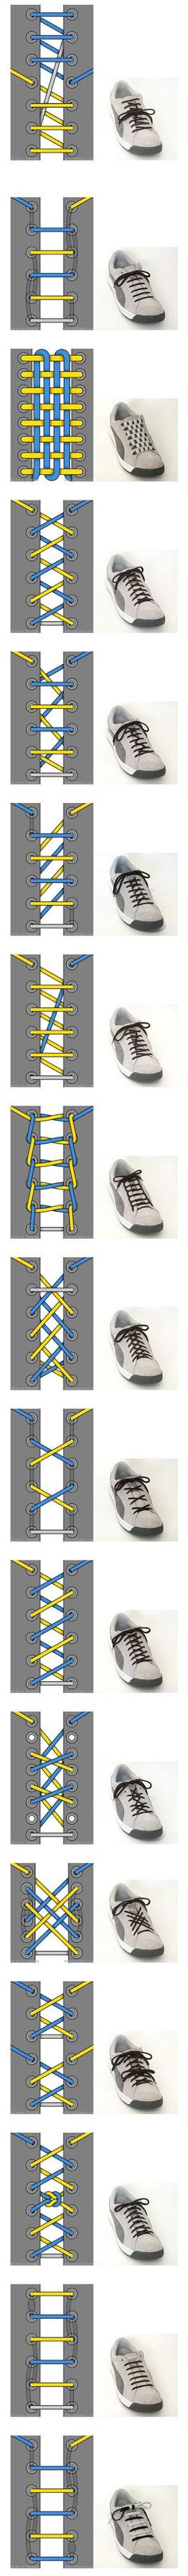 Remember the shoelace madness back in school! Well, those who love sneakers can experiment everyday with this DIY :)